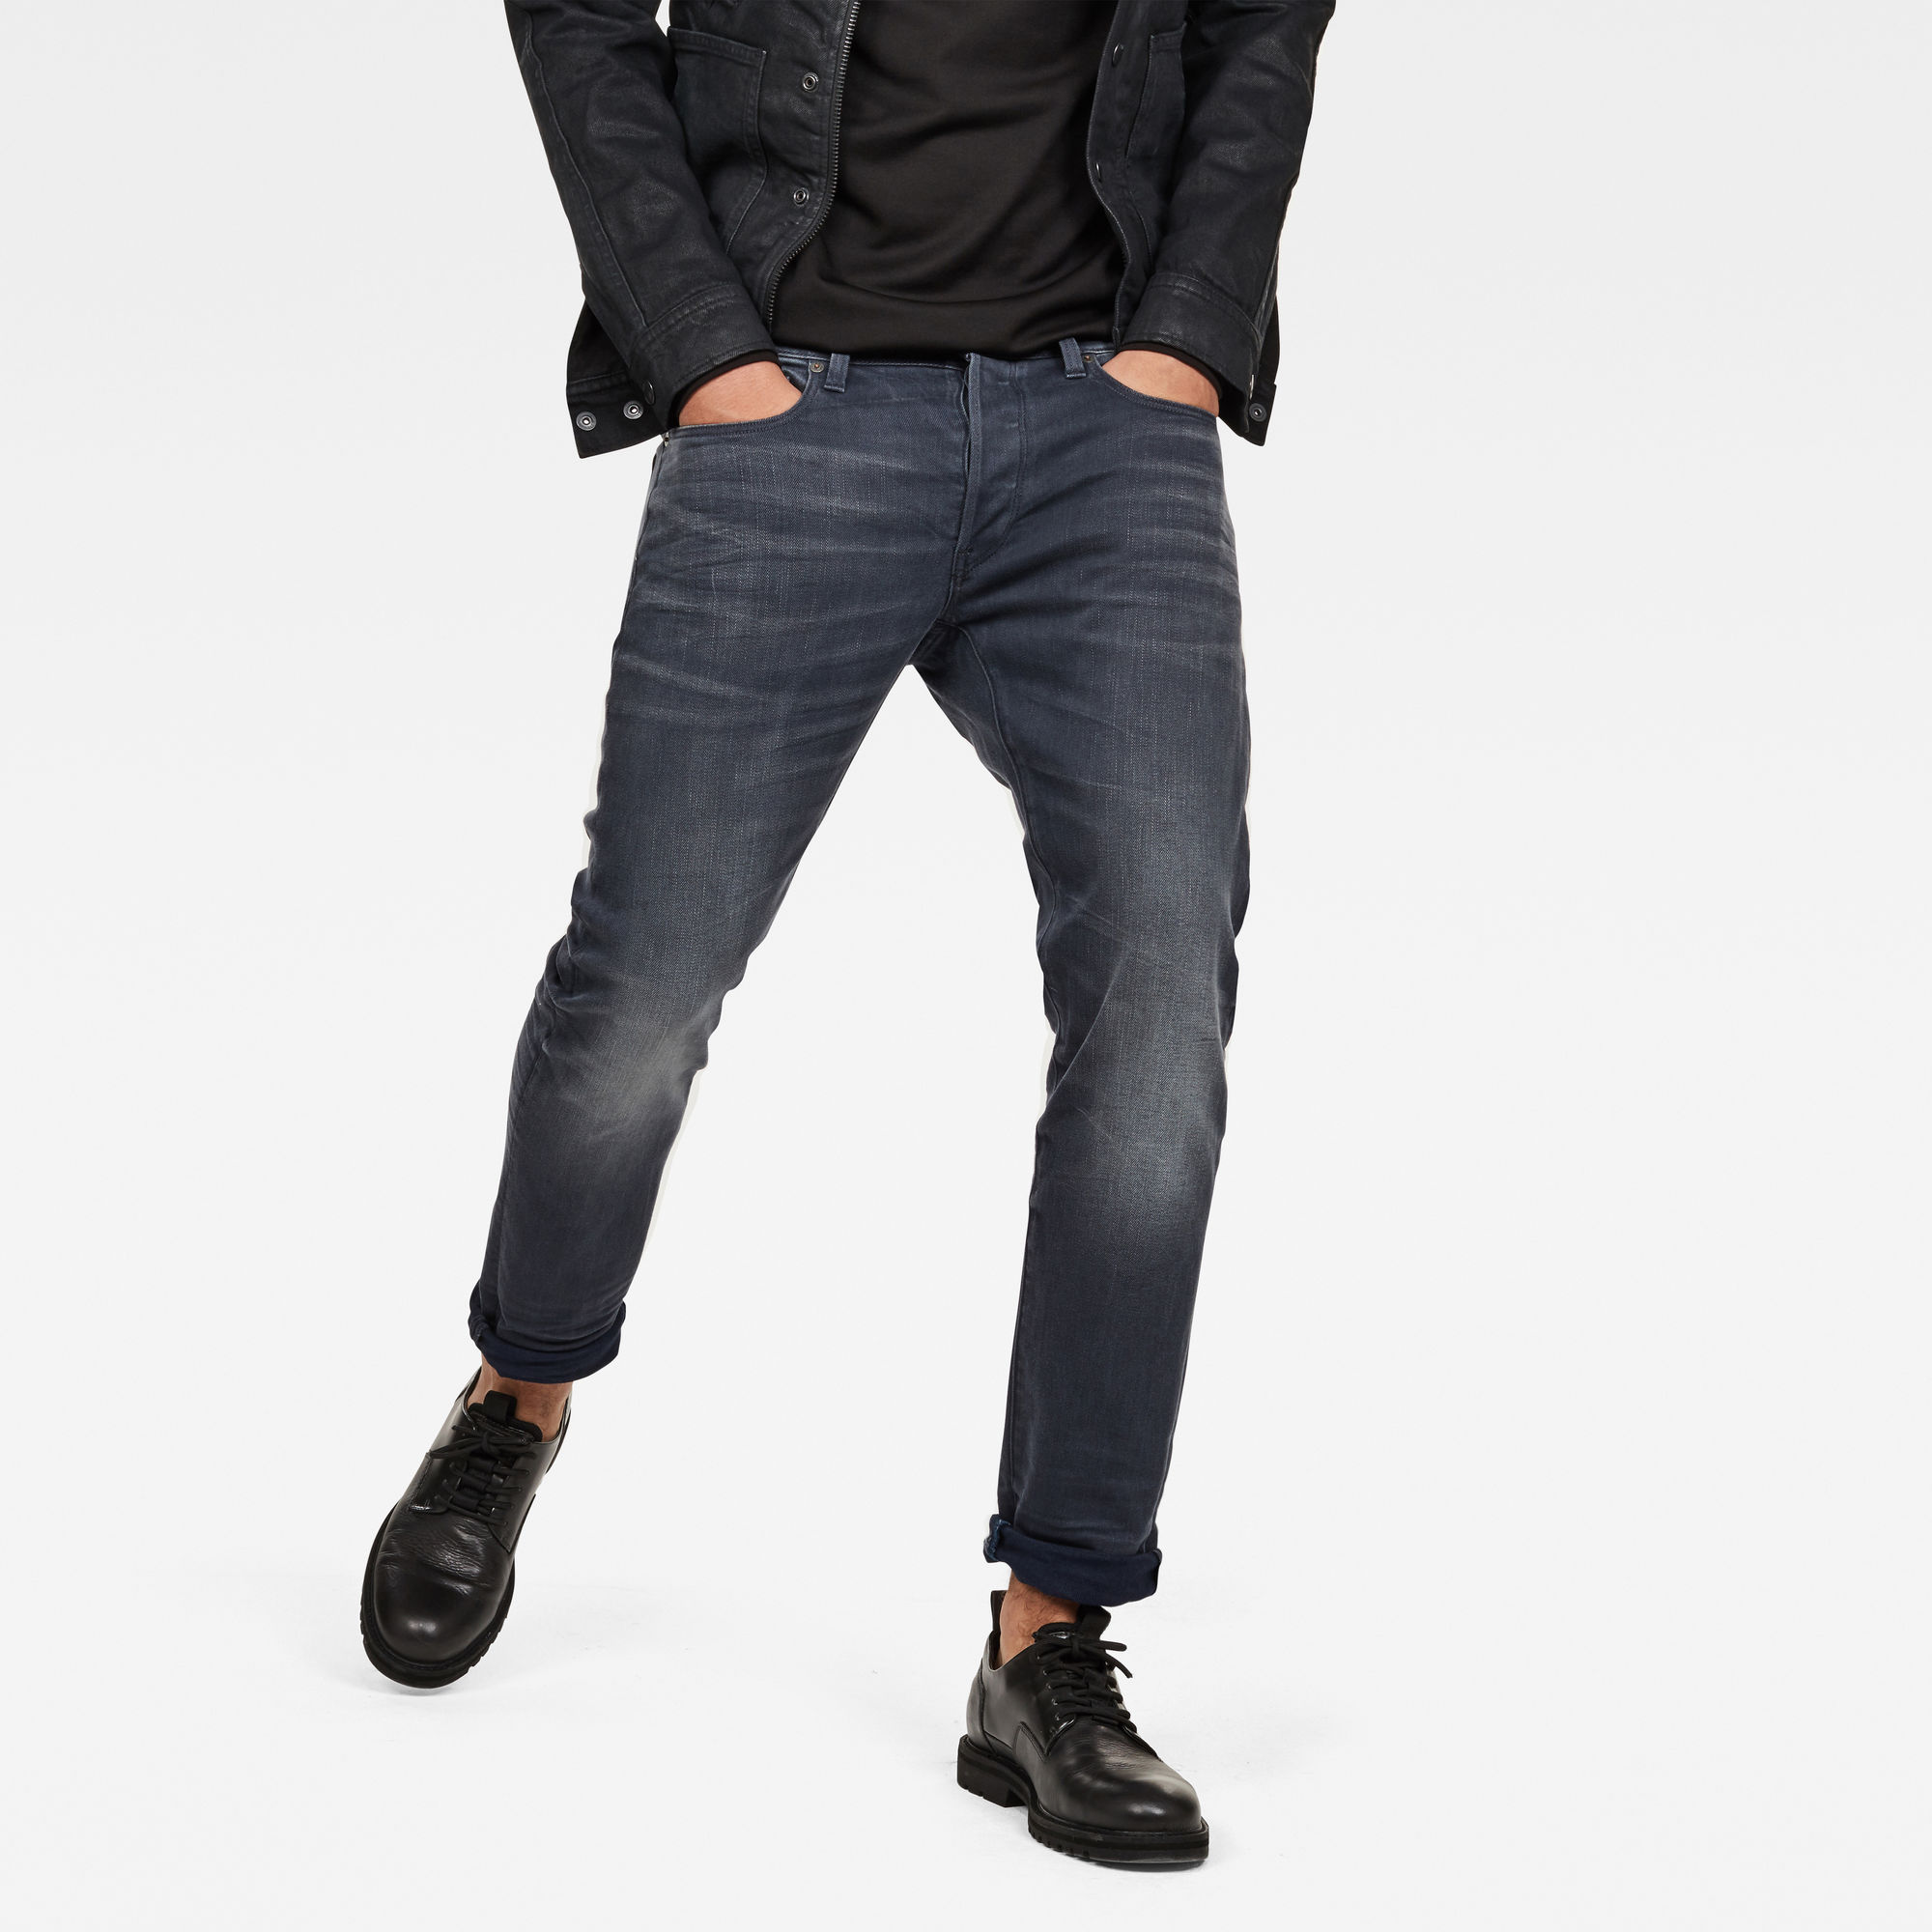 Image of G Star Raw 3301 Slim Jeans